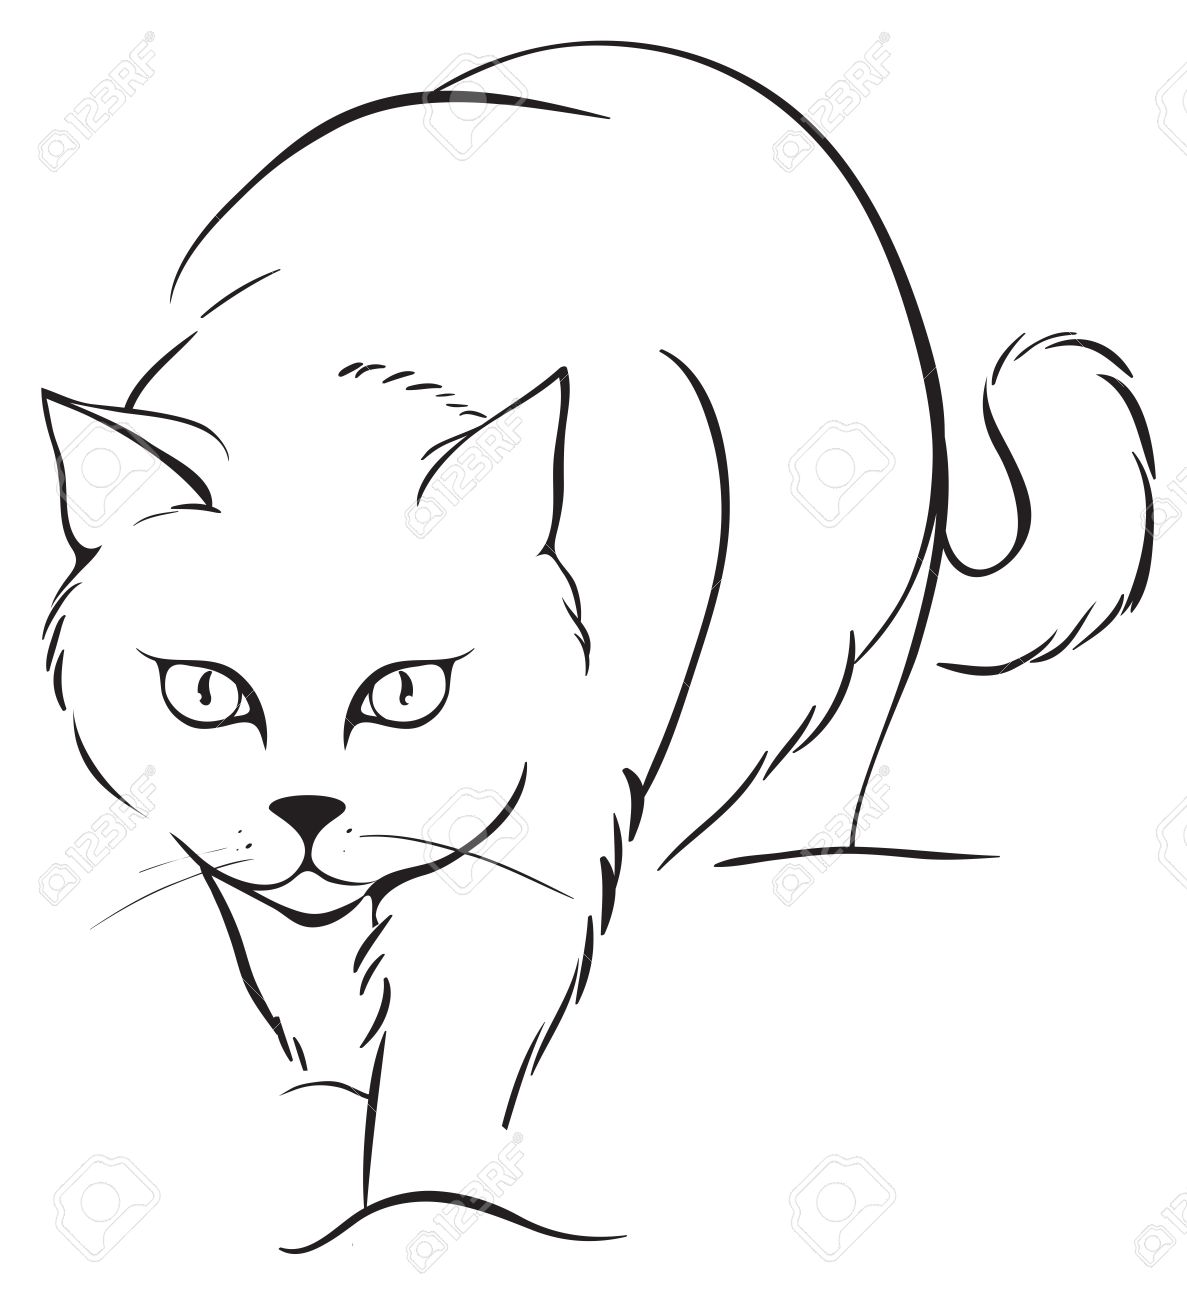 1187x1300 Outline Cat Royalty Free Cliparts, Vectors, And Stock Illustration